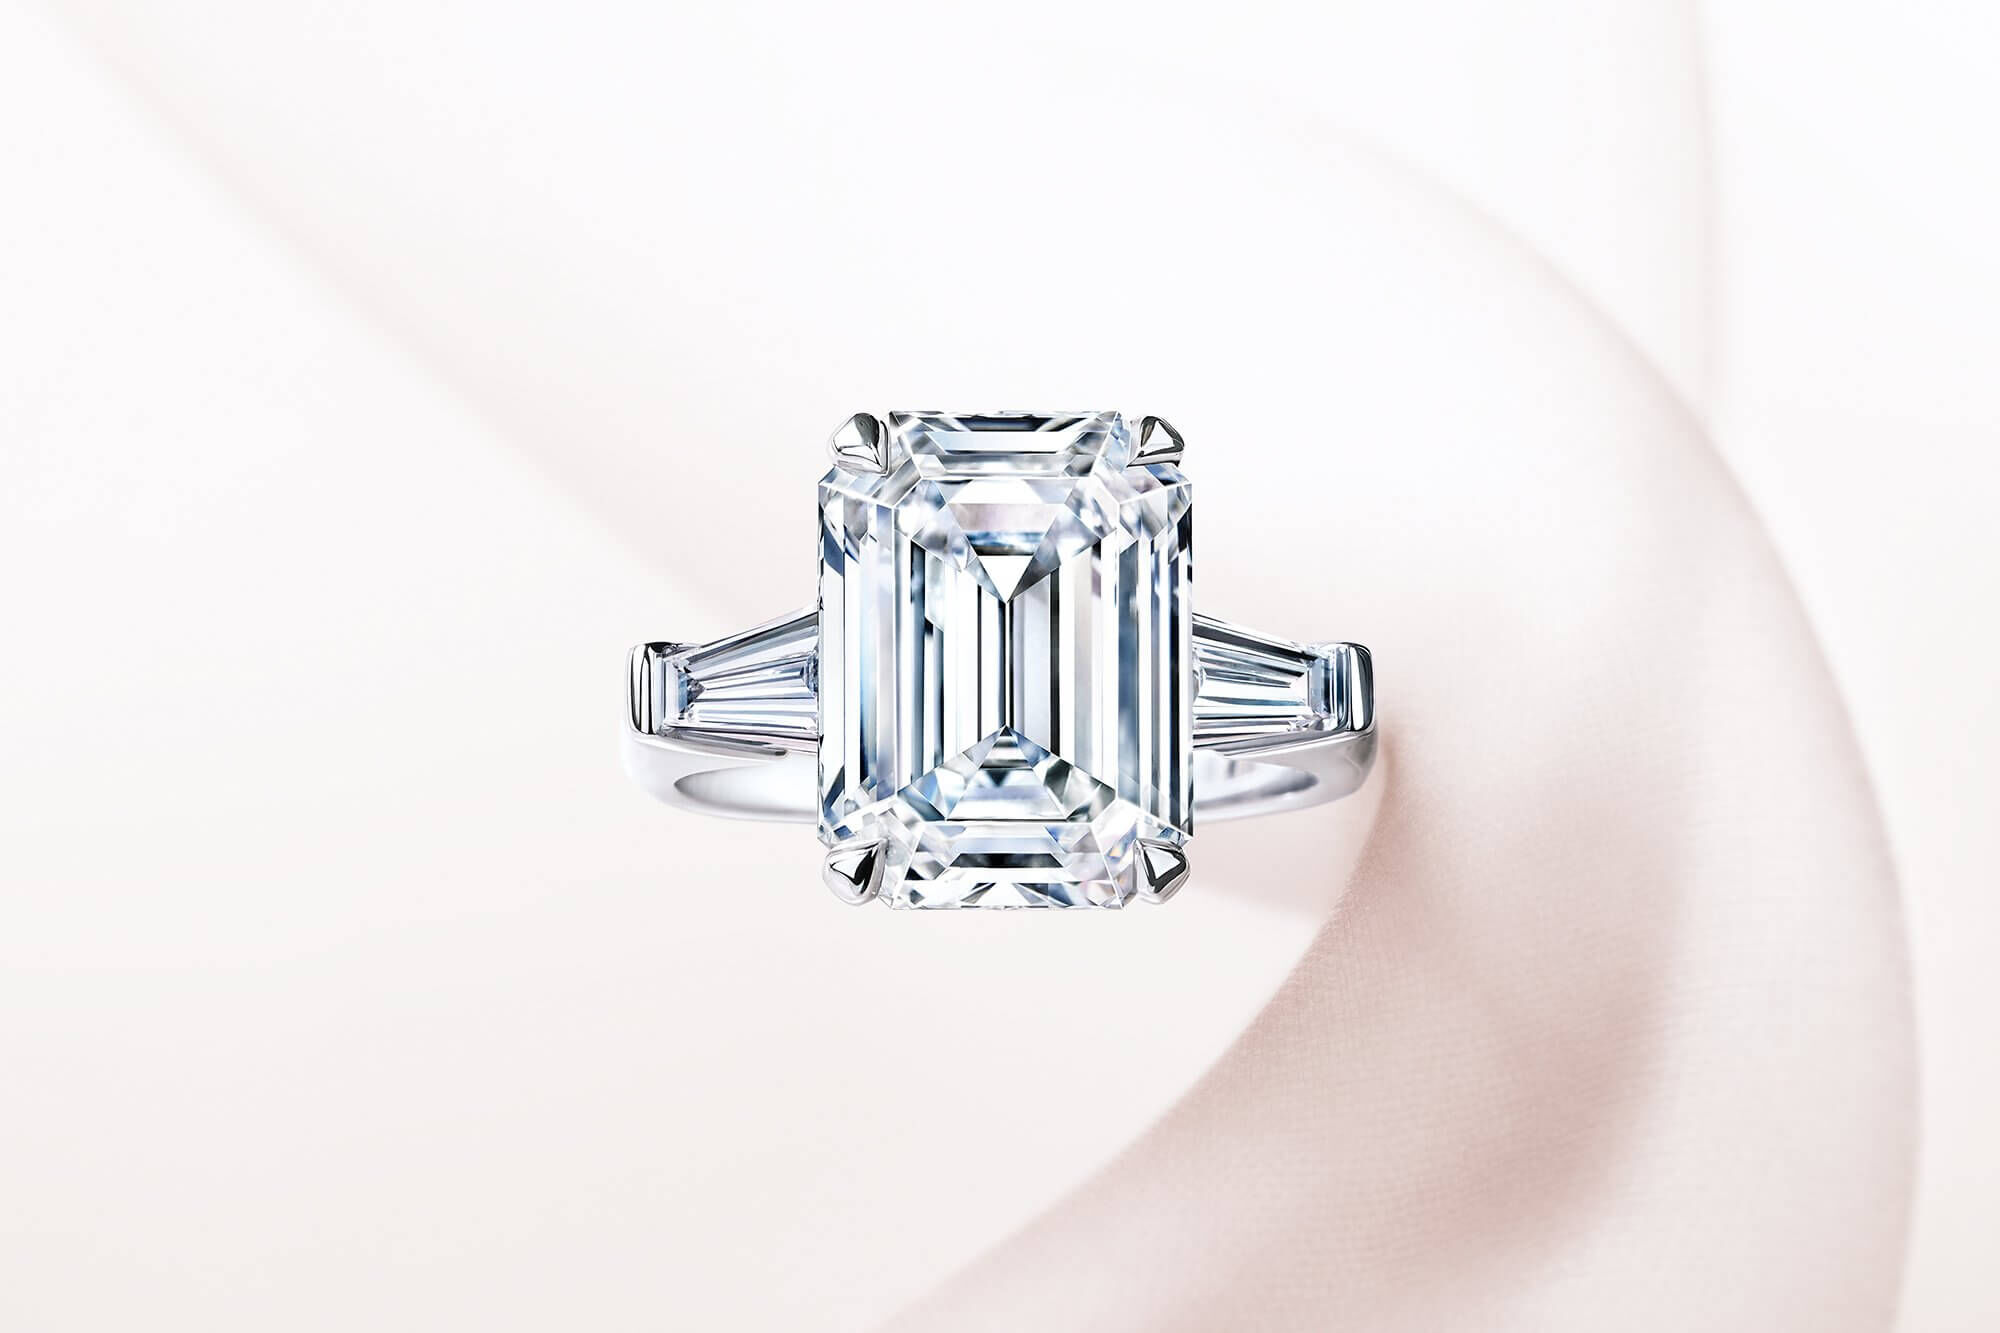 A Graff emerald cut diamond Promise setting engagement ring